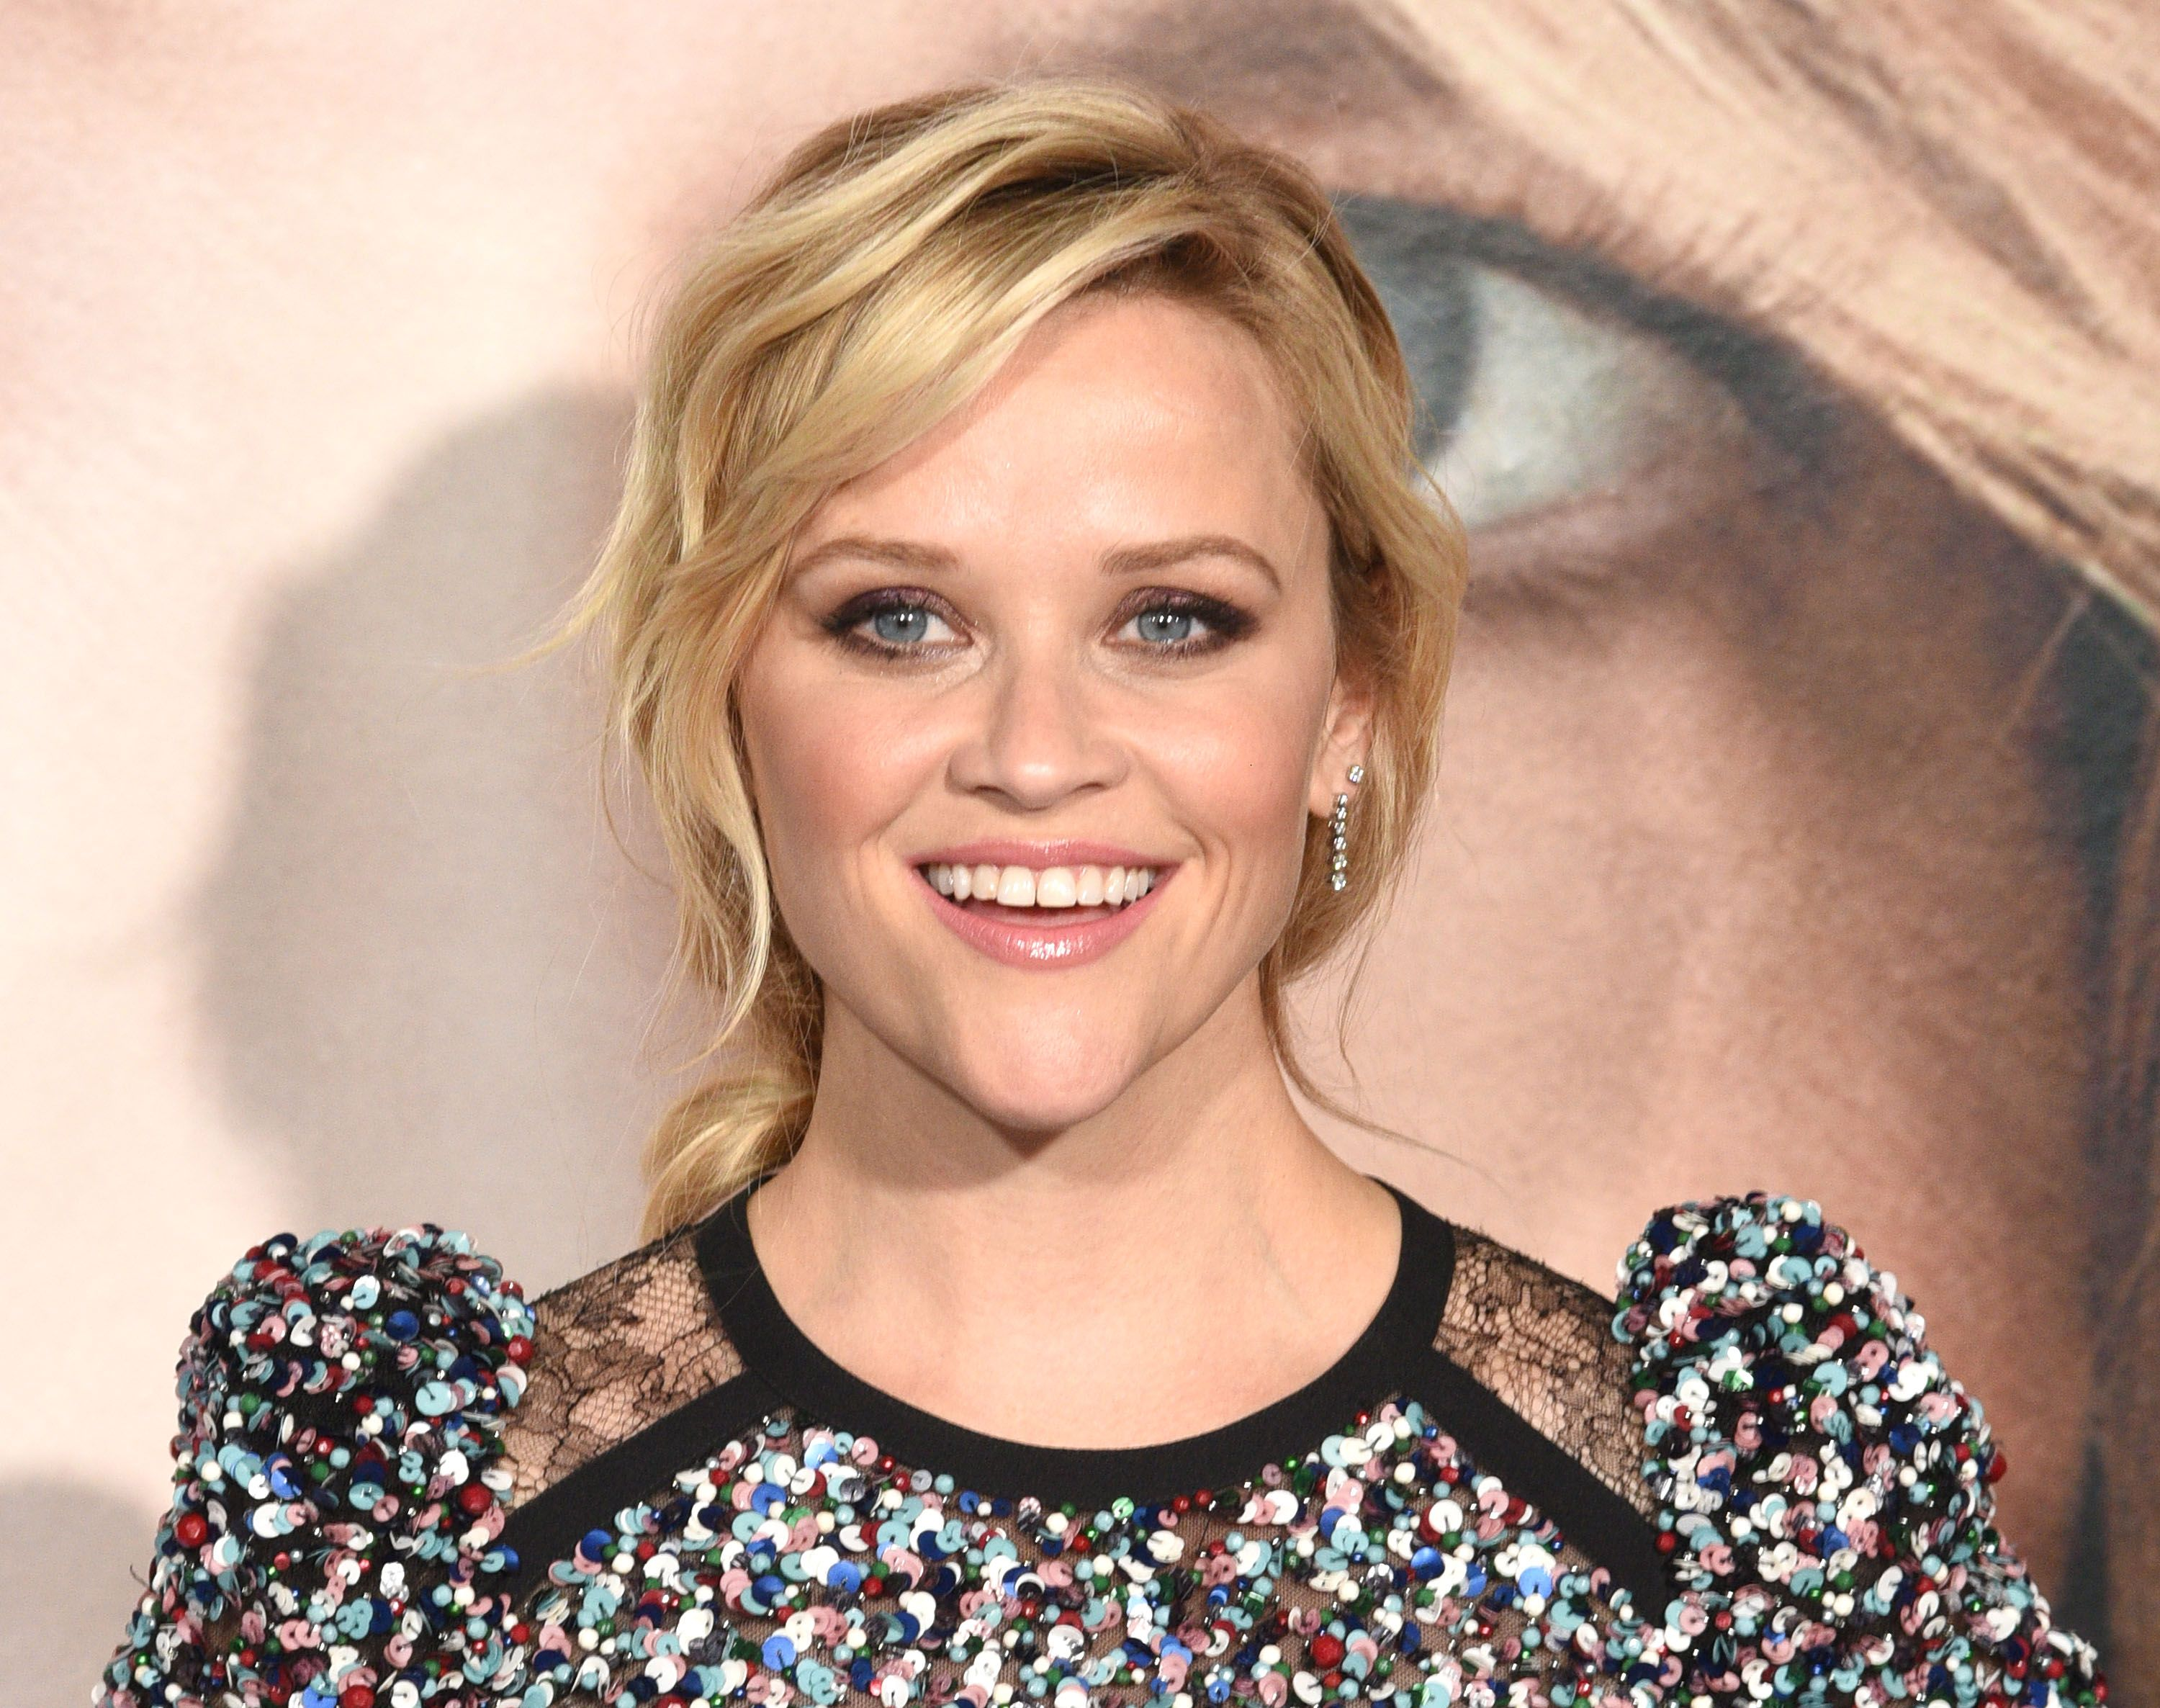 Actress Reese Witherspoon at the premiere of HBO's 'Big Little Lies' at TCL Chinese Theatre on February 7, 2017 | Photo: Getty Images